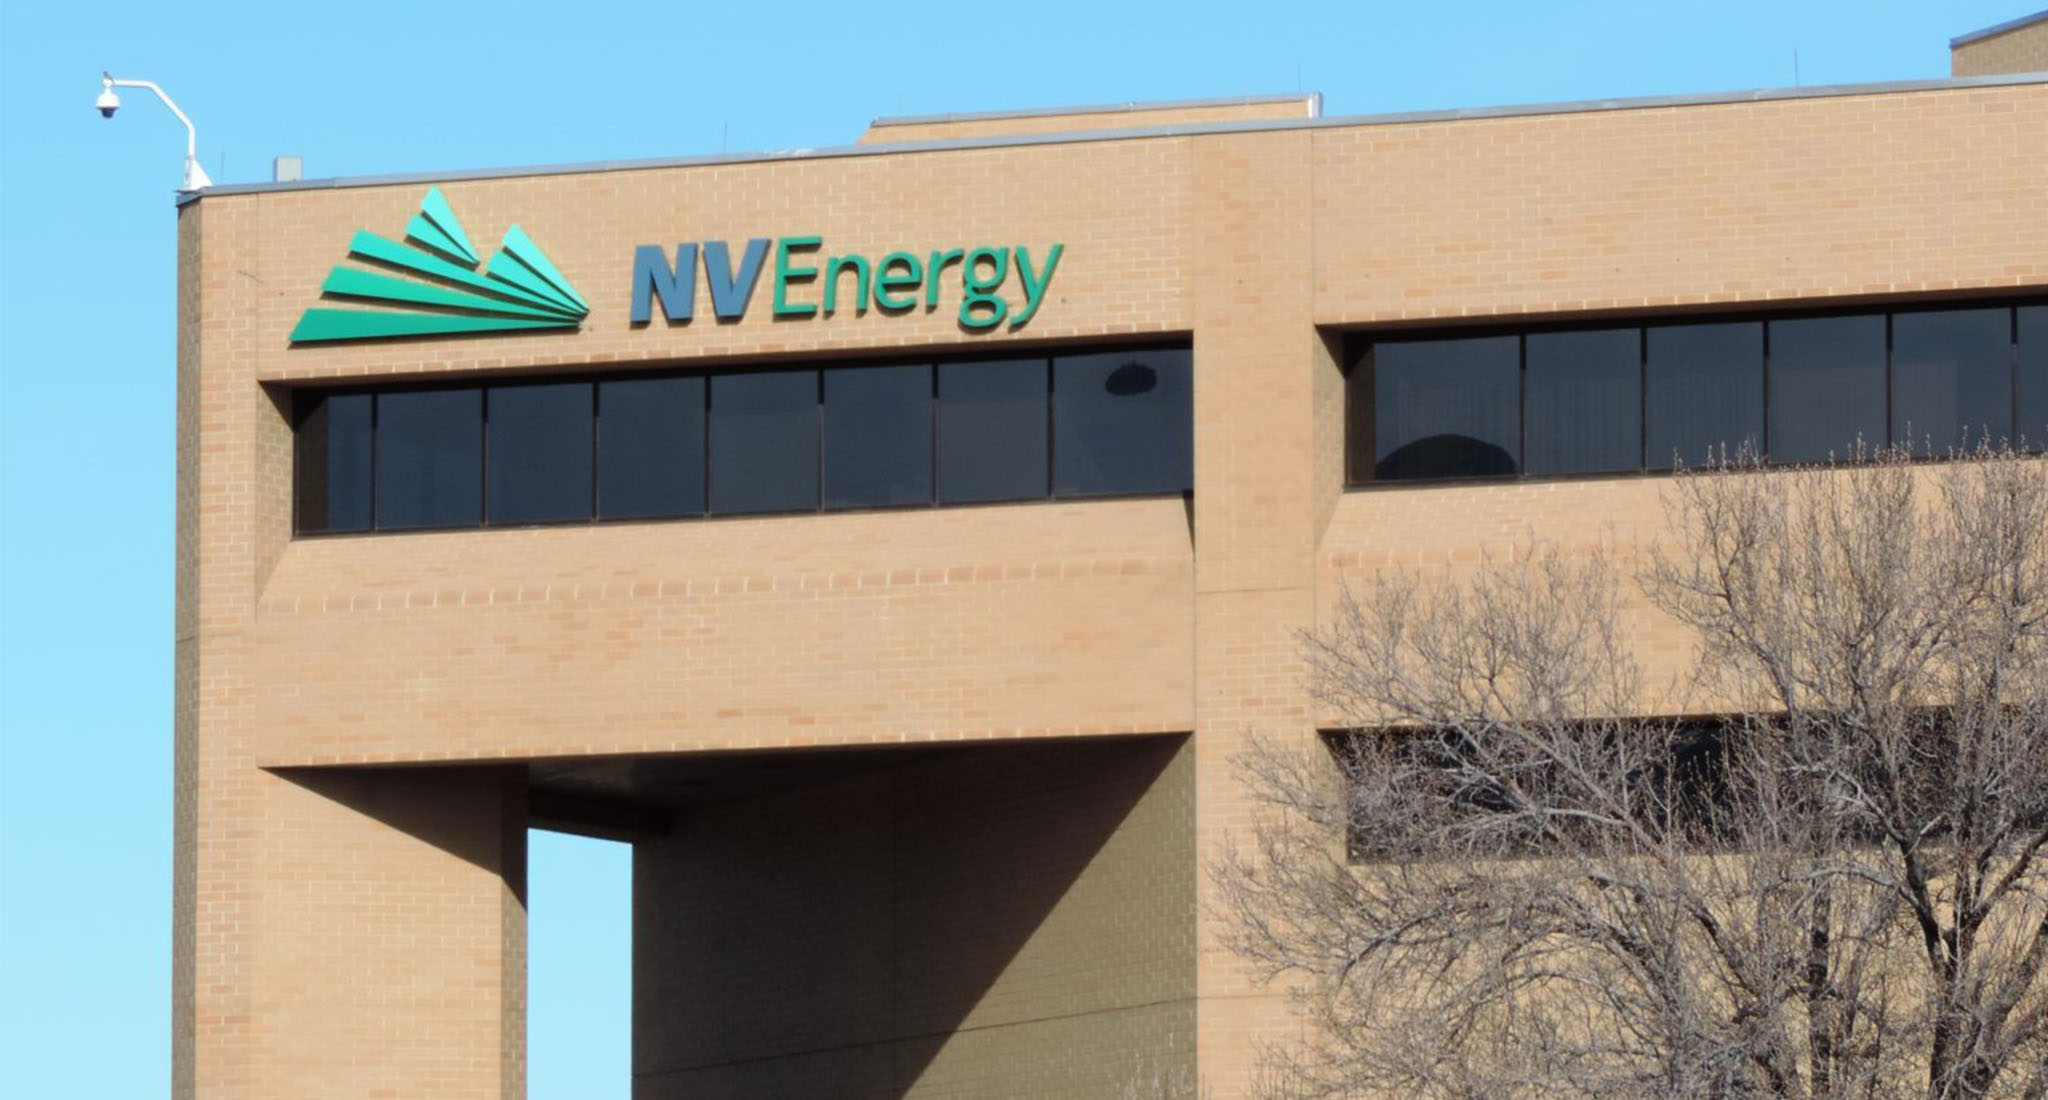 NV Energy, RHP Mechanical Systems